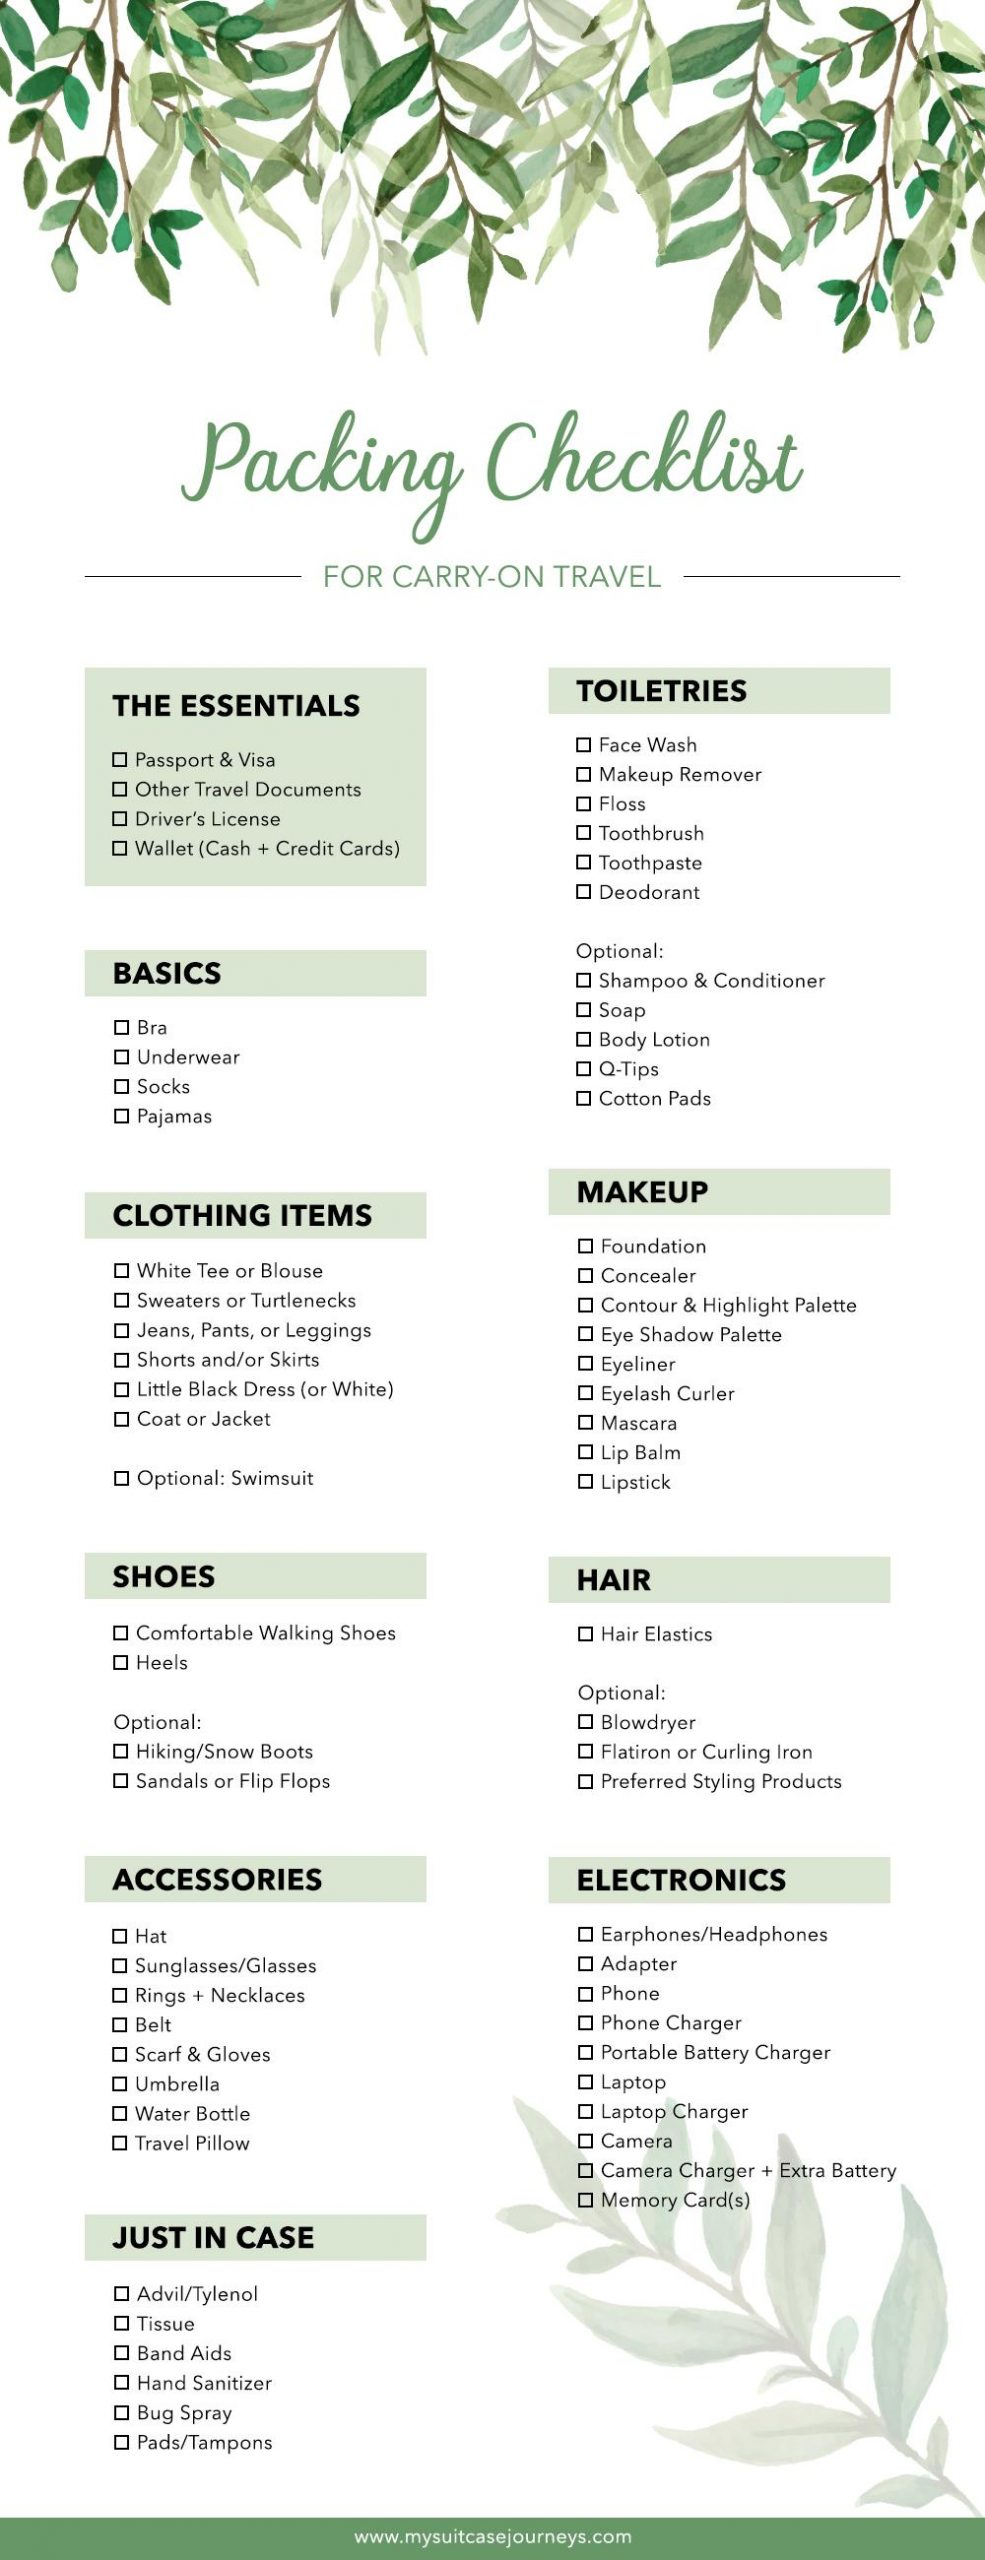 Packing checklist for carry-on travel.